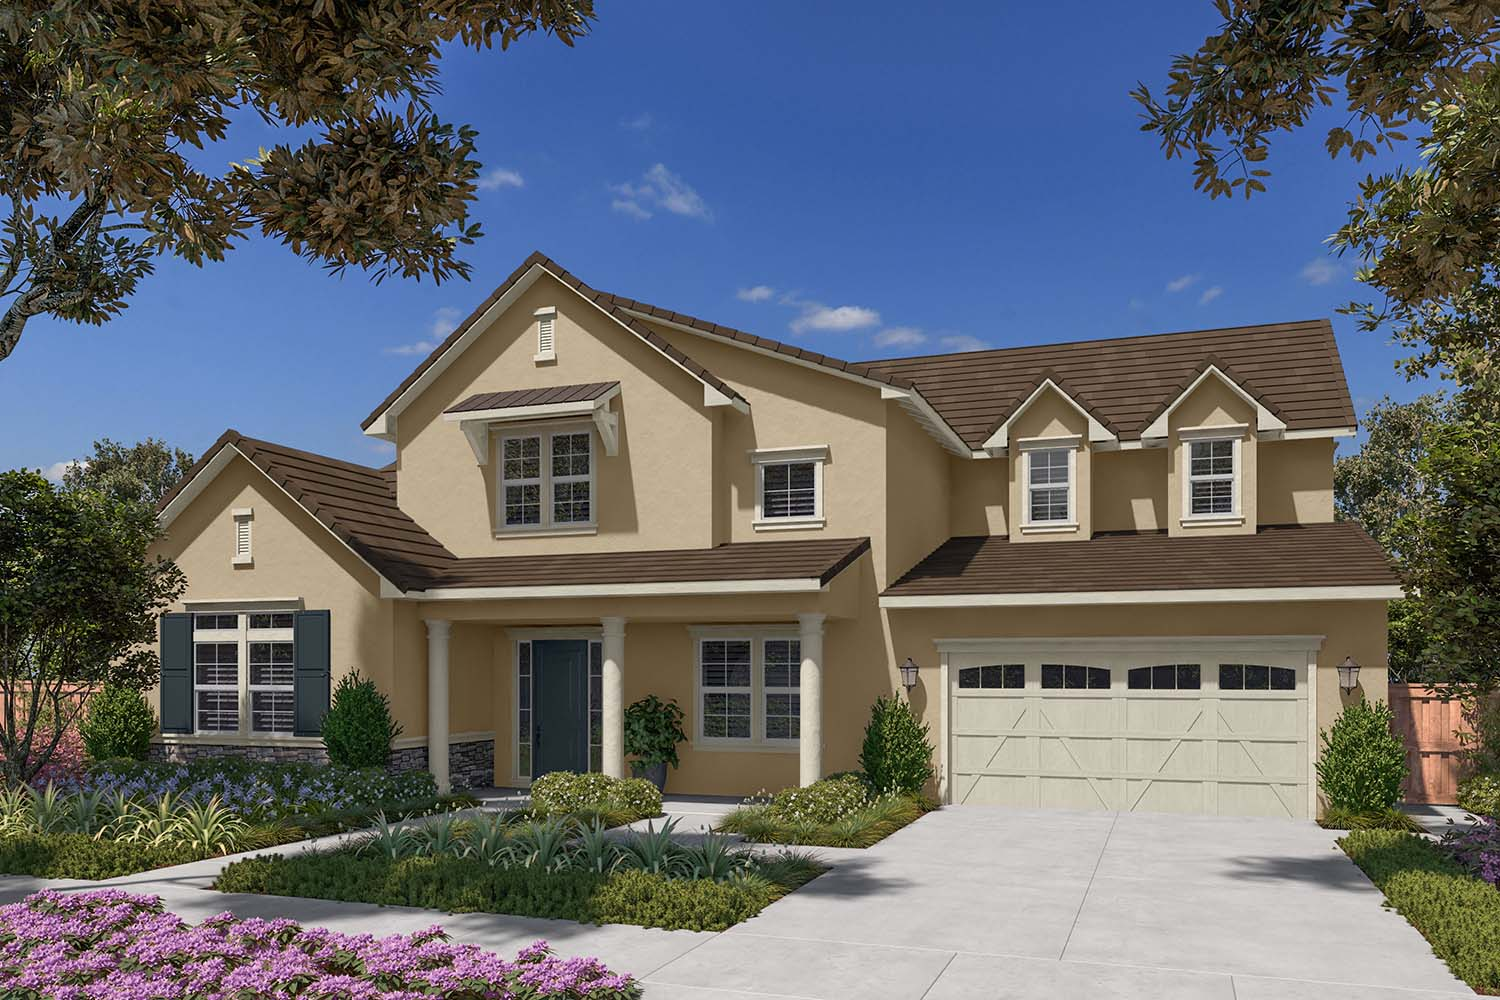 Rose Avenue Estates Is Redefining Luxury Living In Pleasanton. A Brand New  Ponderosa Homes Community, This Collection Of Upscale Single Family  Residences ...